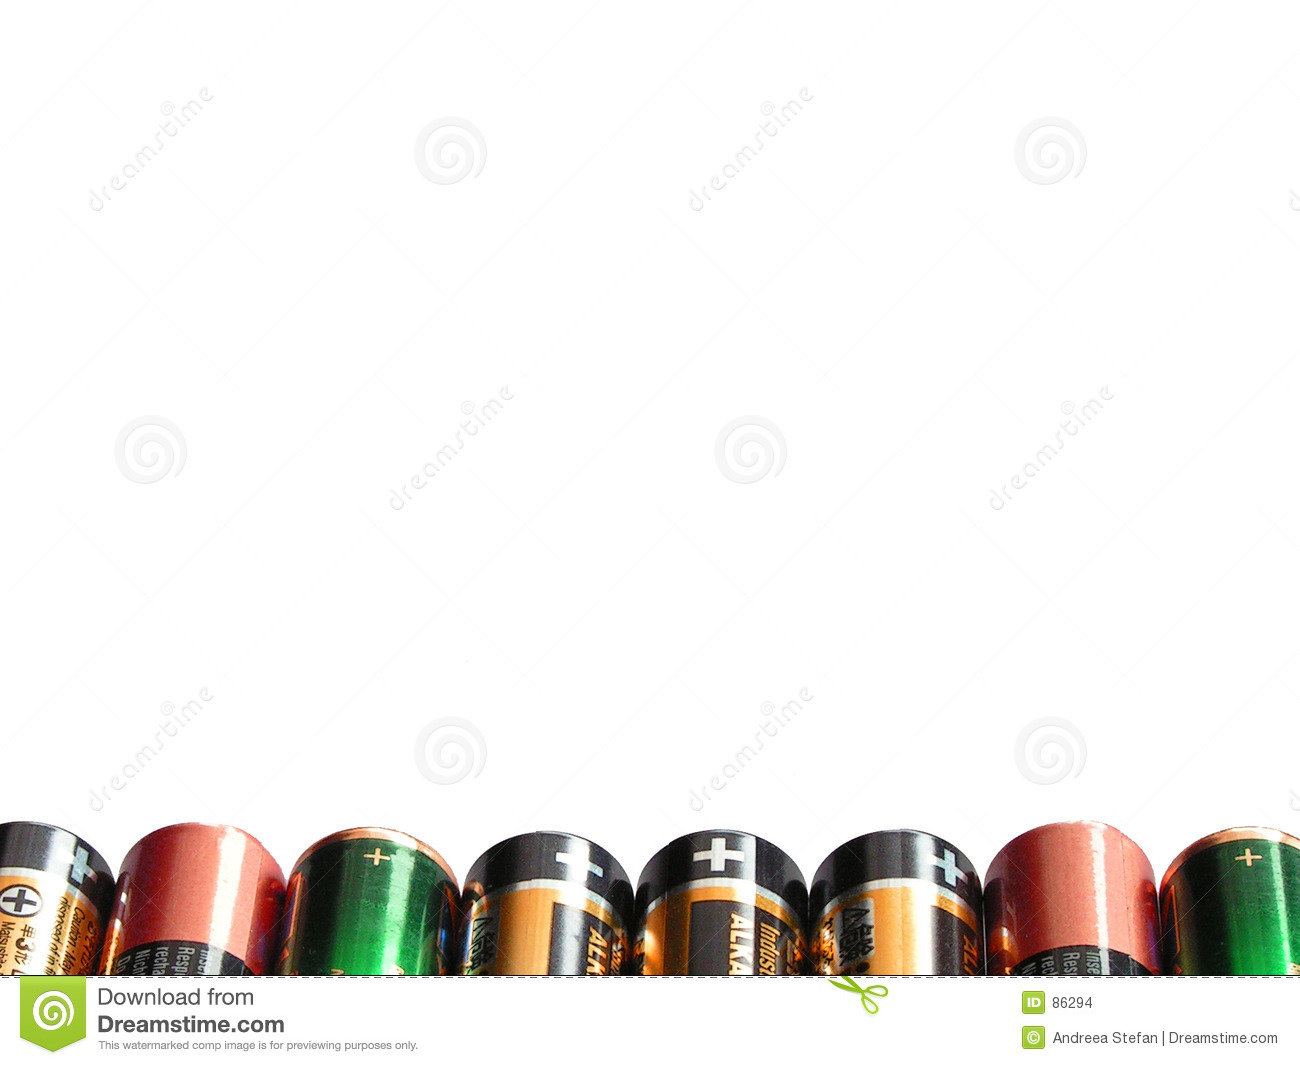 6 Volt Rechargeable Battery